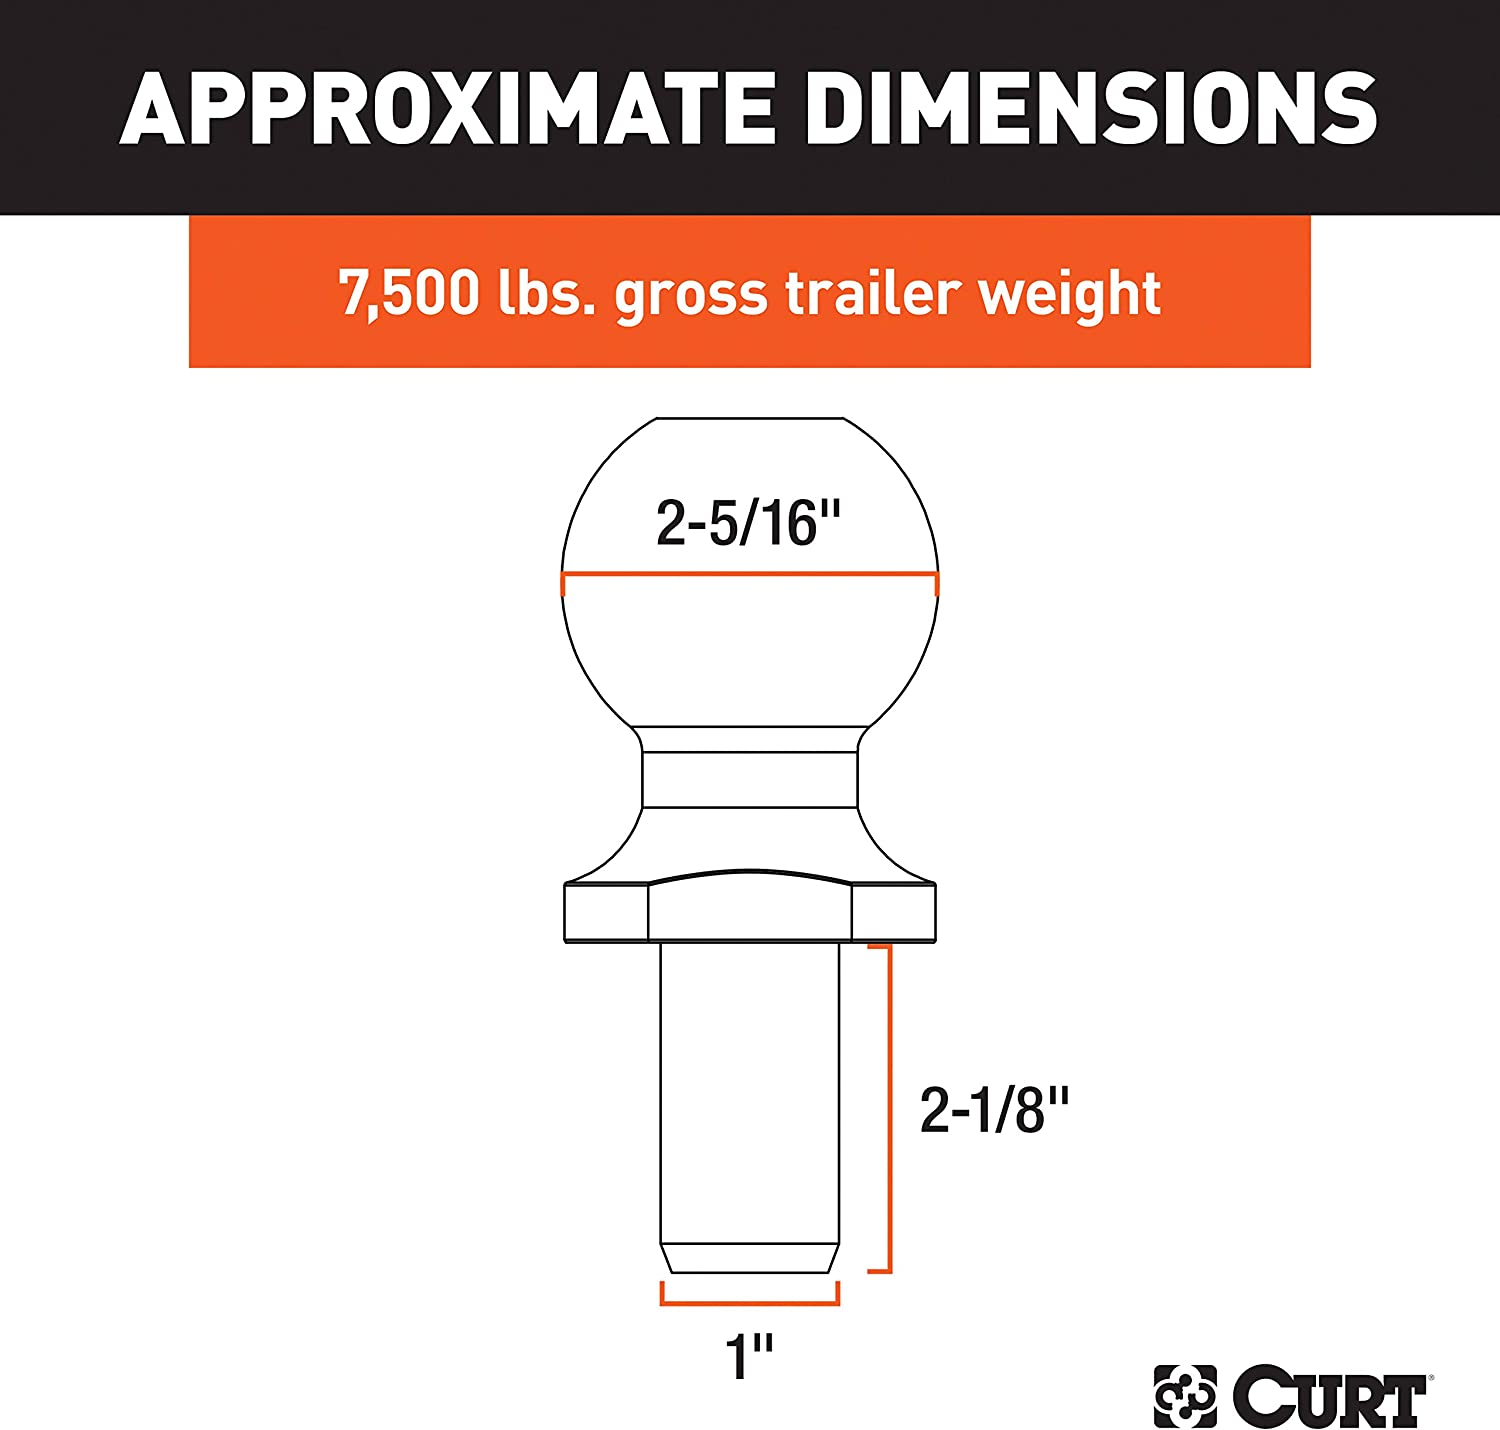 7,500 lbs. CURT 40054 Stainless Steel Trailer Hitch Ball 2-5//16-Inch Diameter Tow Ball with 1-Inch x 2-1//8-Inch Shank